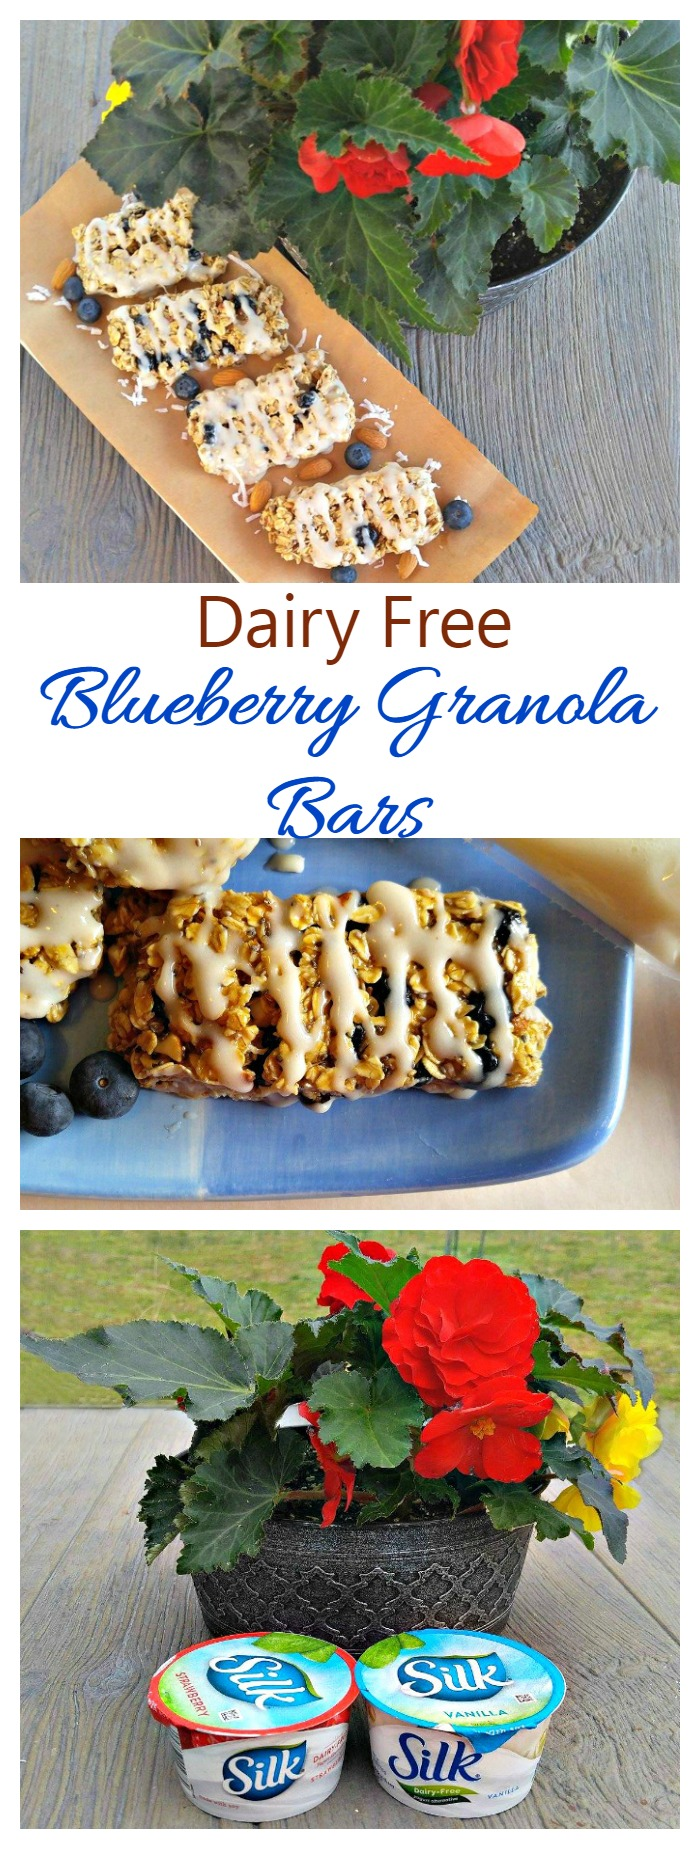 These Blueberry Granola Bars are dairy free and chock full of tasty ingredients. They make a great breakfast on the go! #DairyFreeGoodness #ad